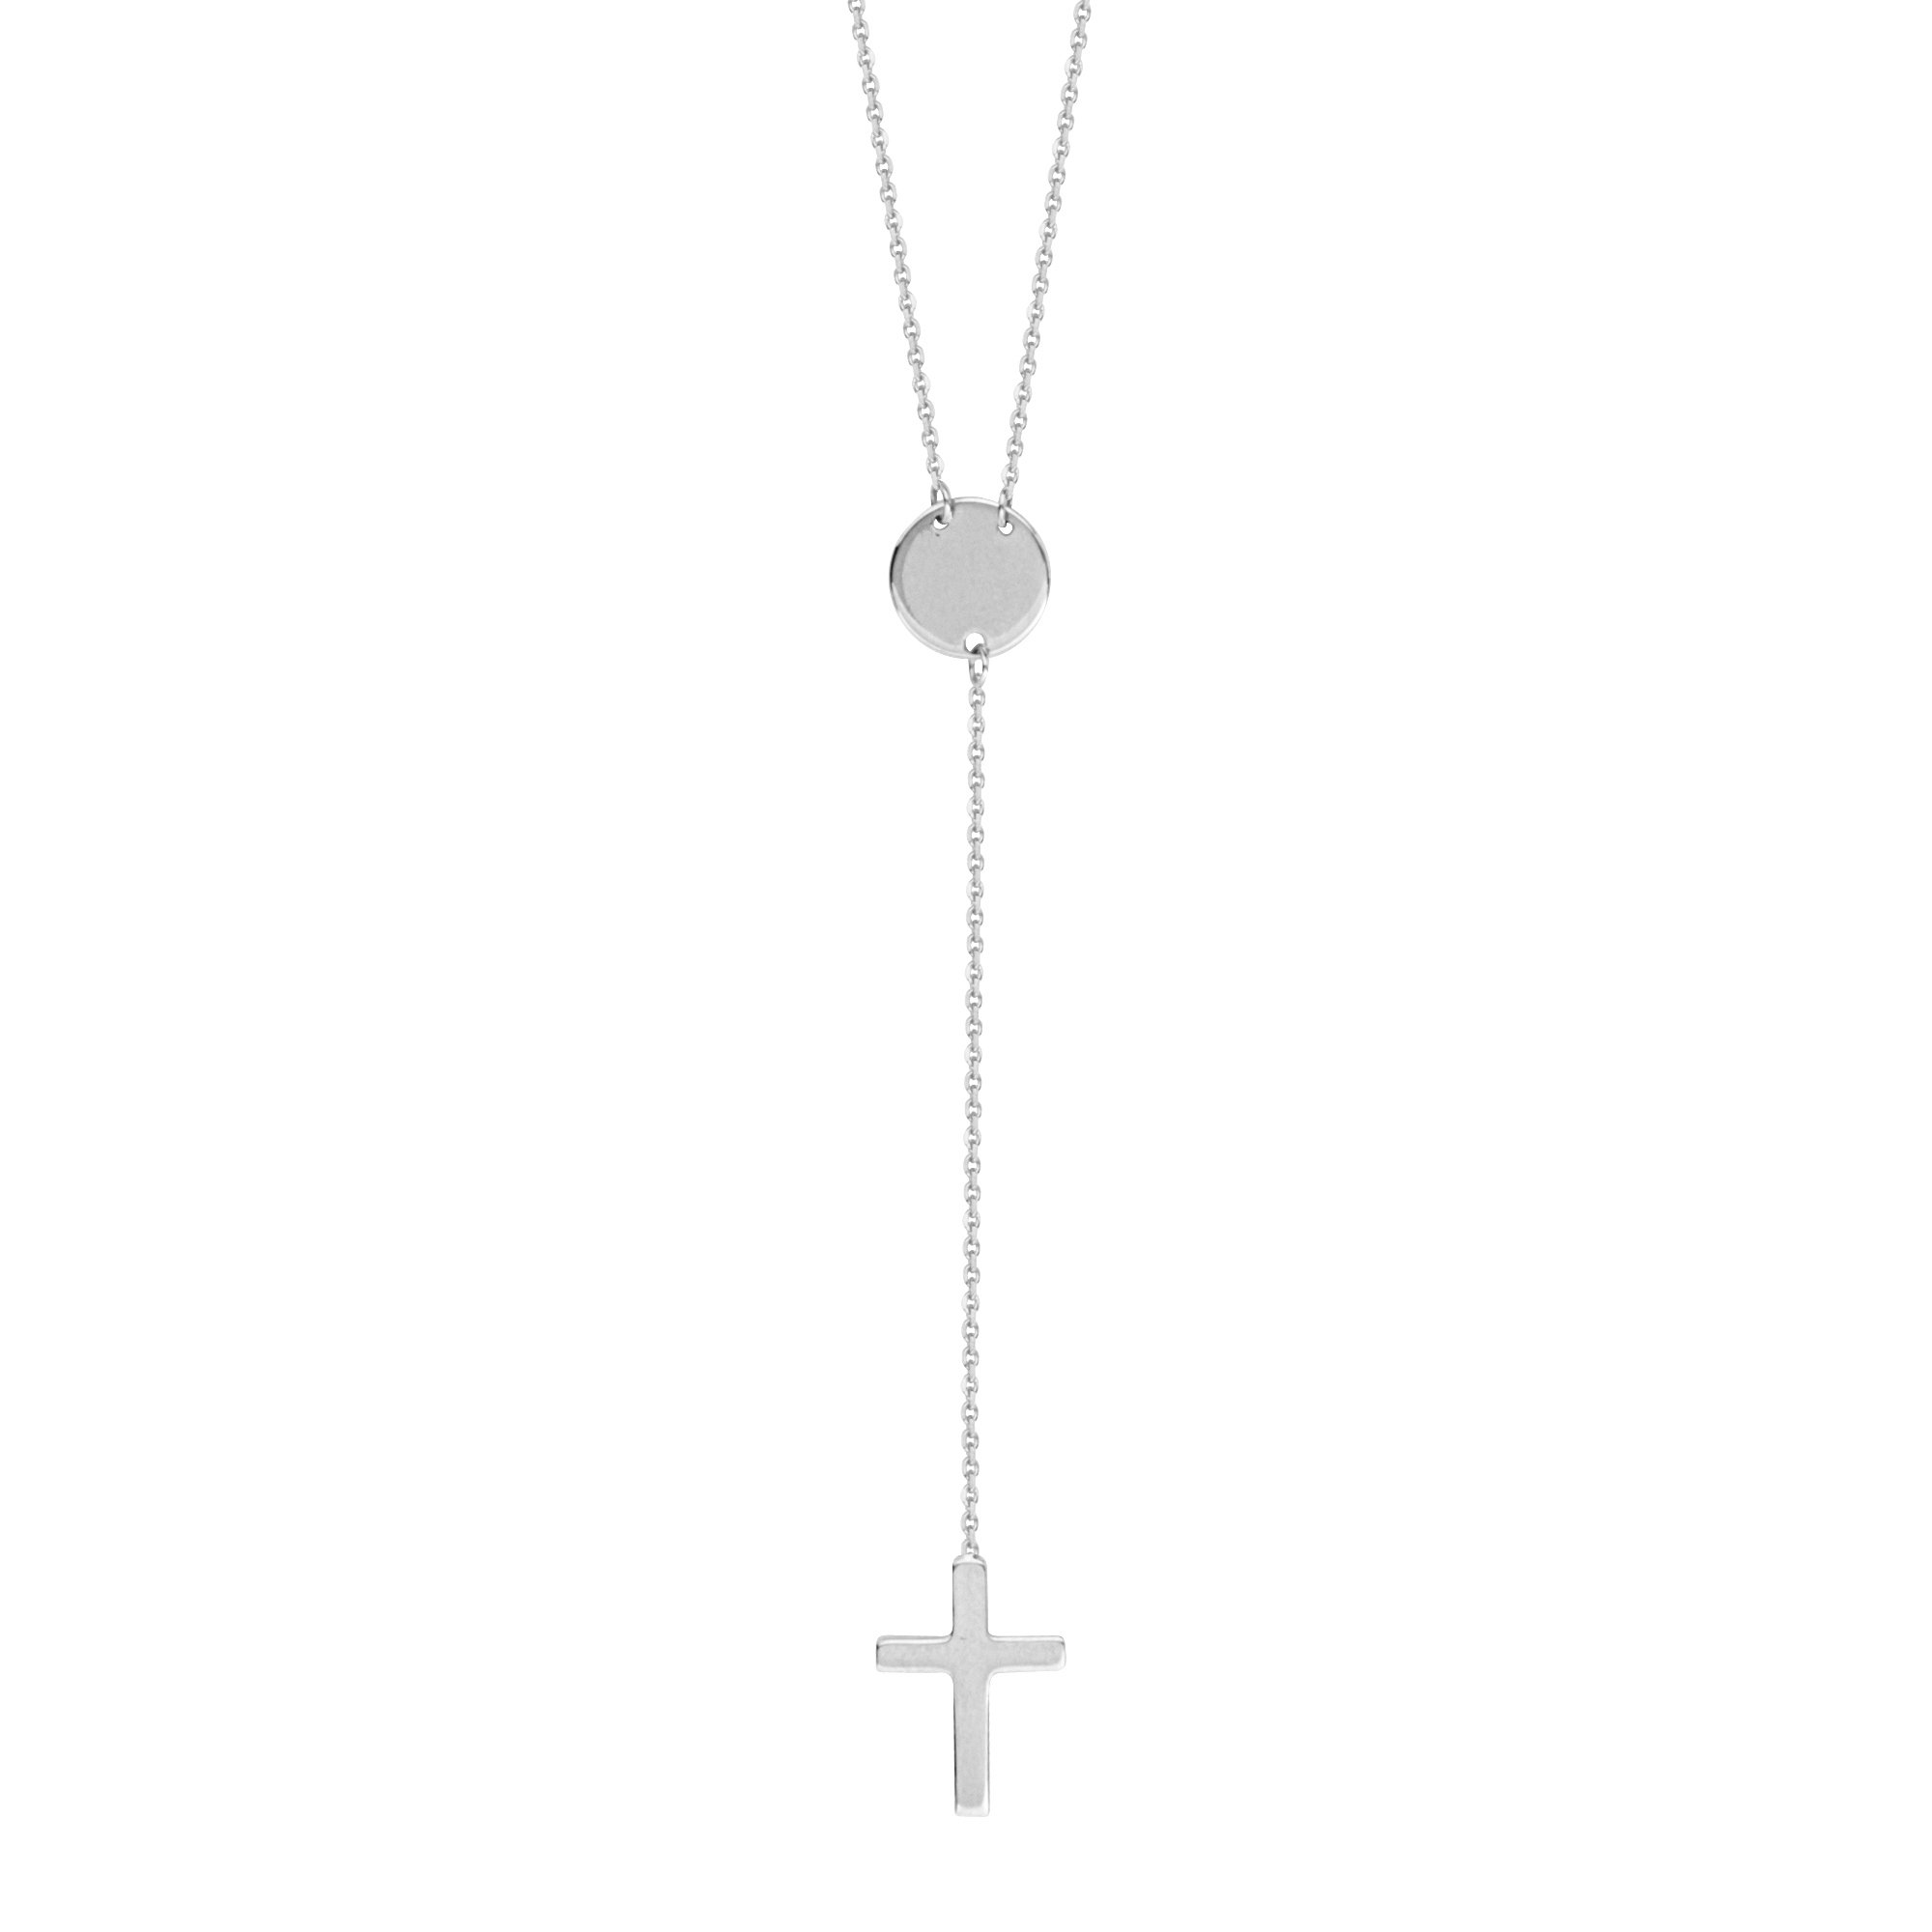 Disk and Cross Drop Necklace Lariat Style 14k White Gold Adjustable Length by AzureBella Jewelry